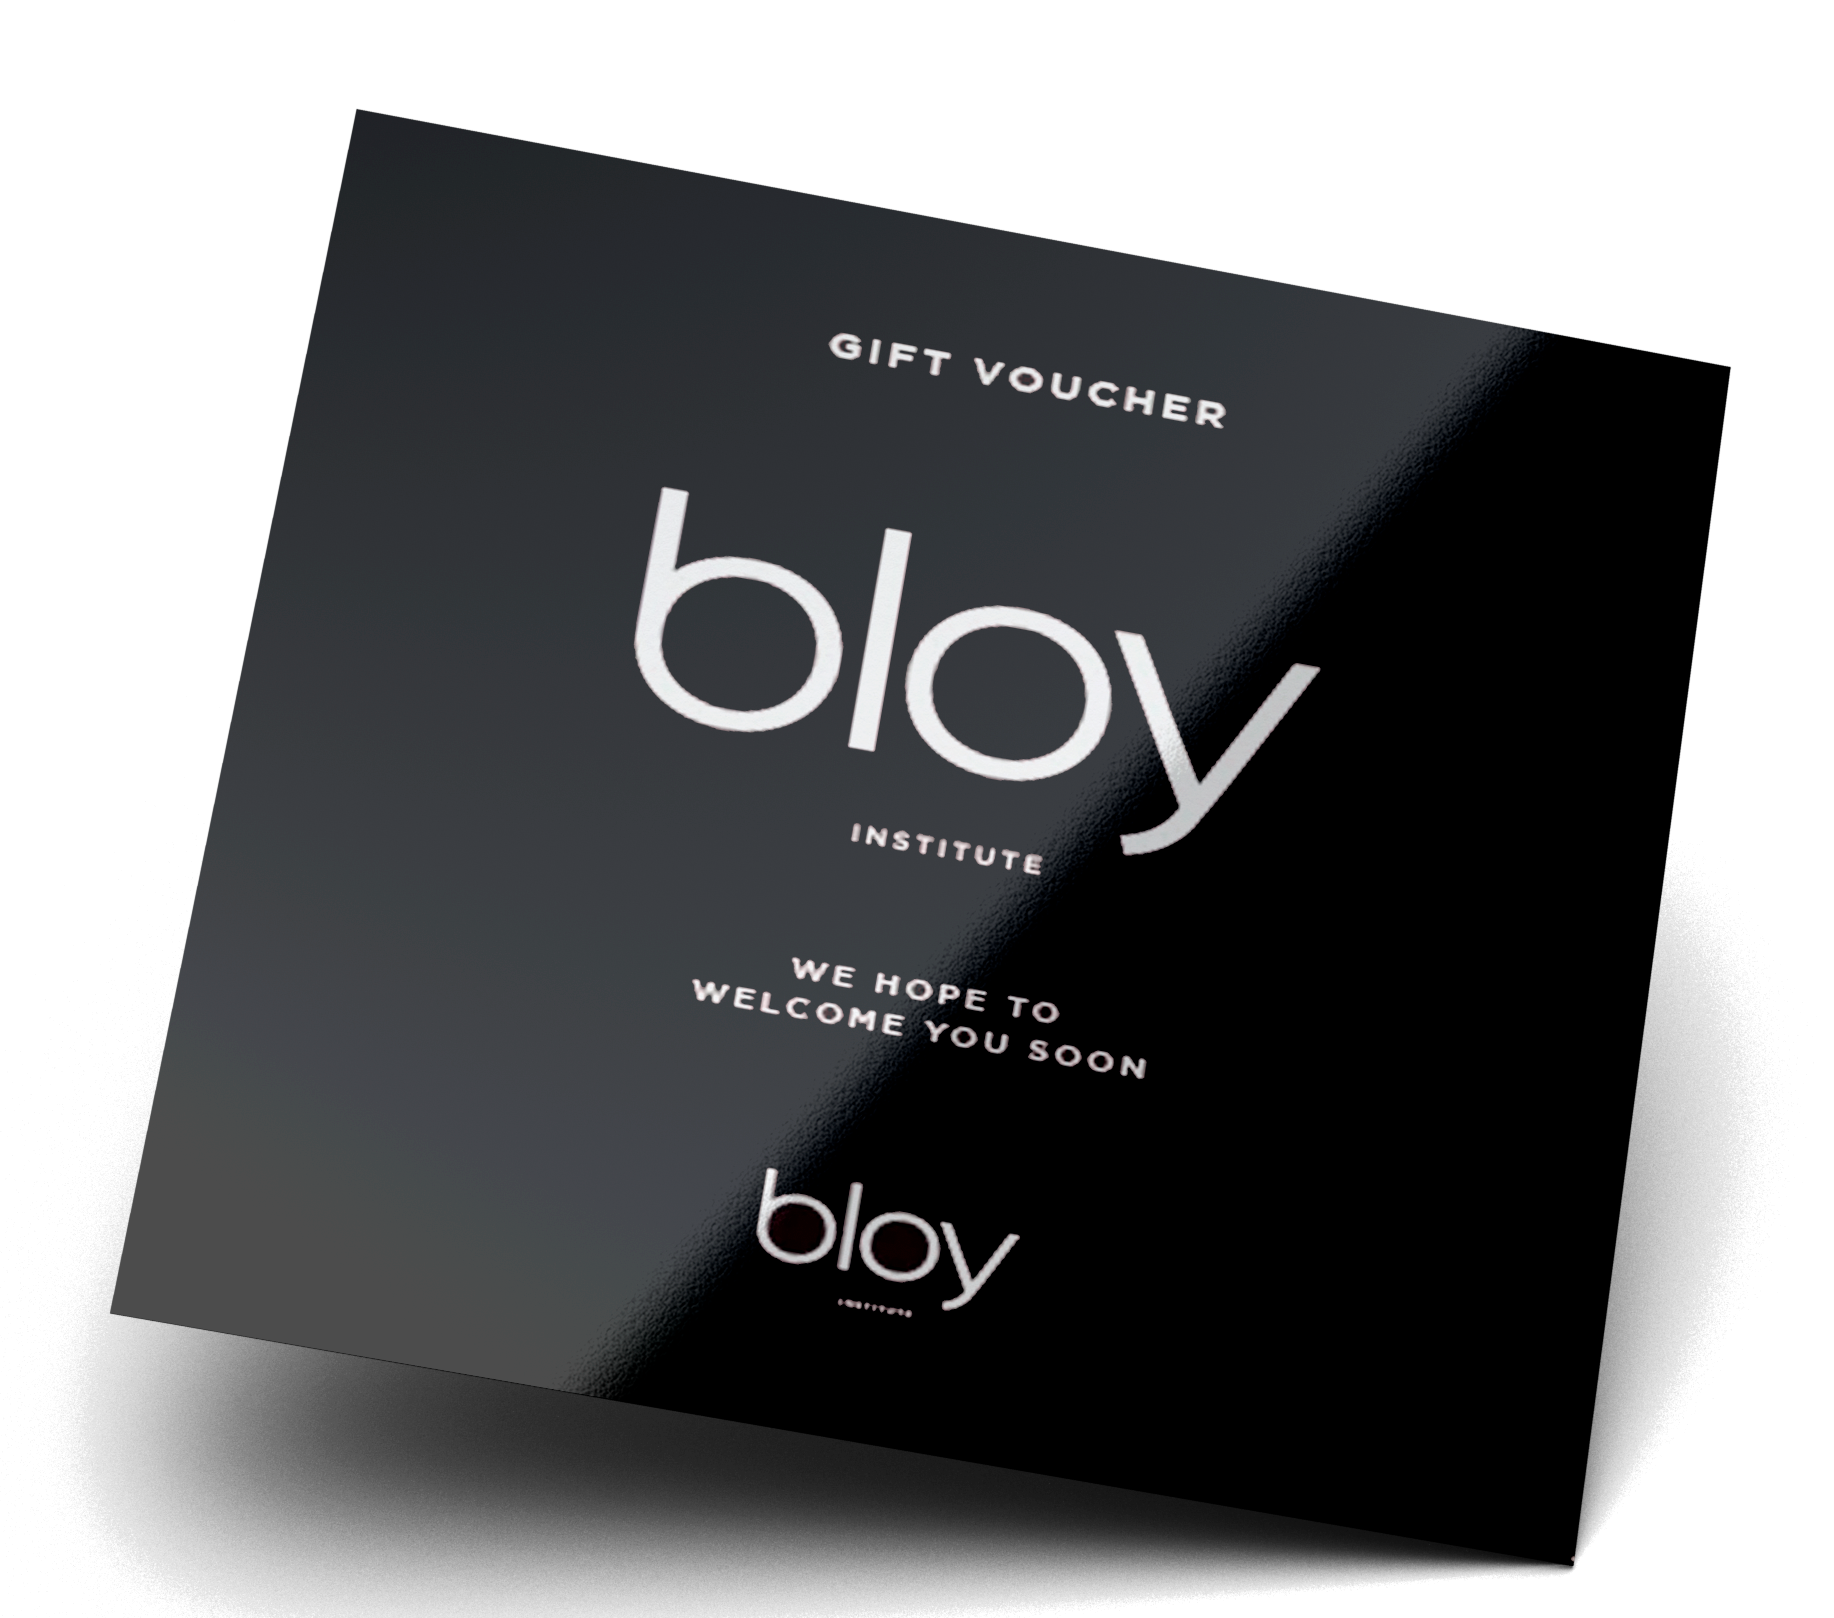 Gift voucher | BLOY Institute Amsterdam